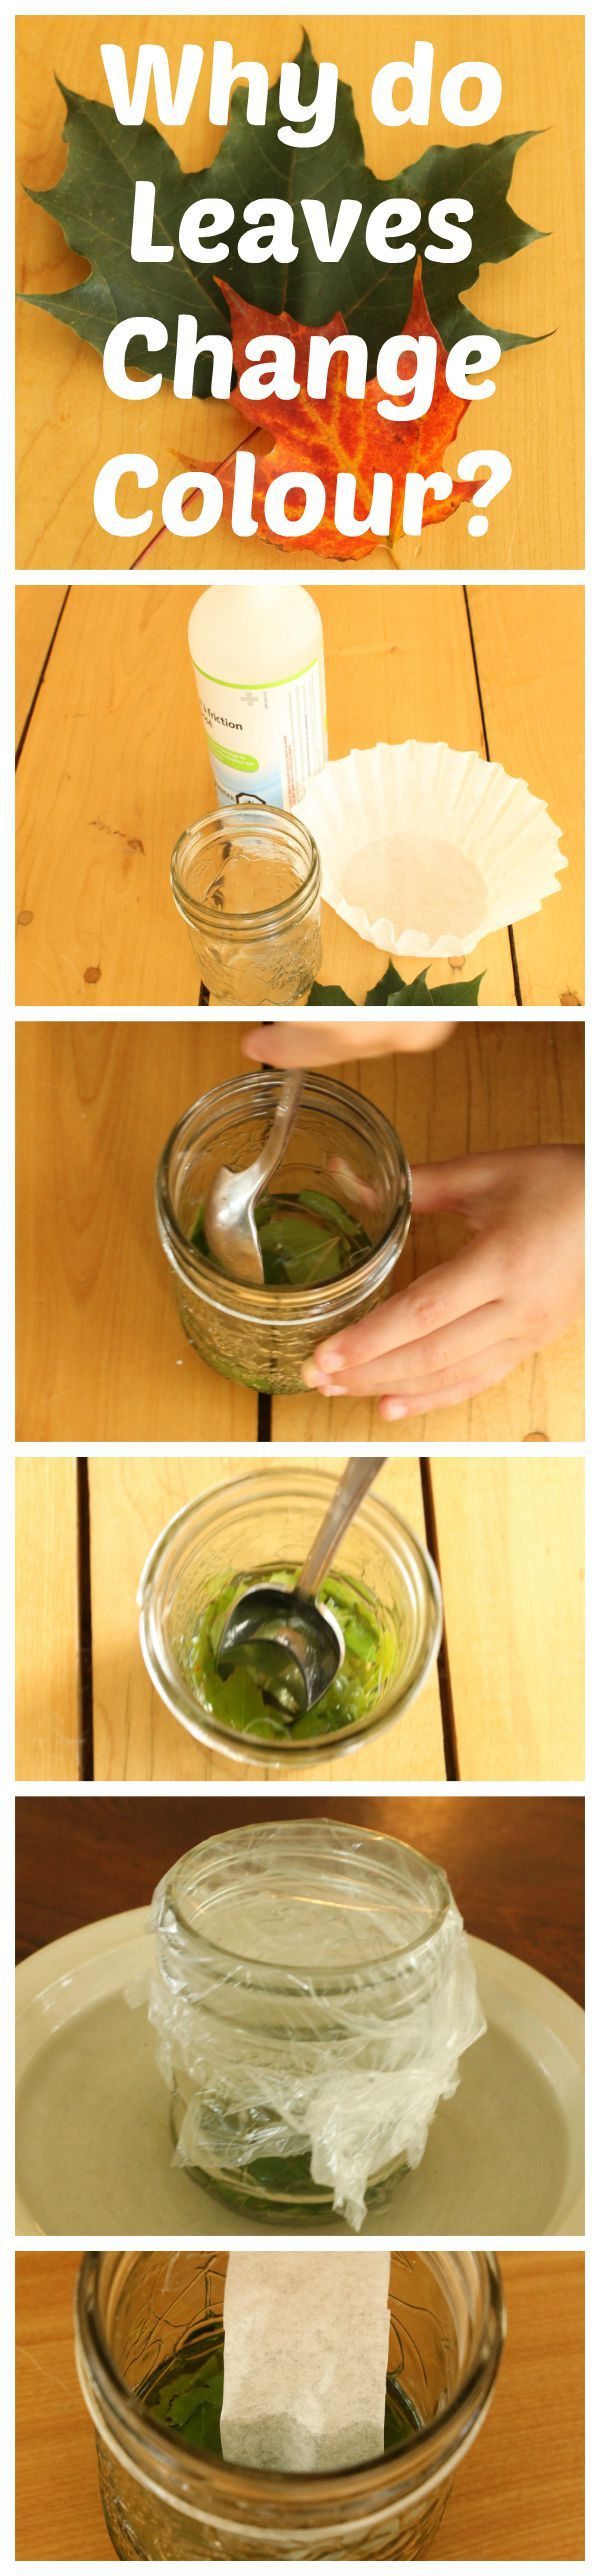 Science experiments for kids why do leaves change color herbst pinterest experiment - Schulprojekte ideen ...